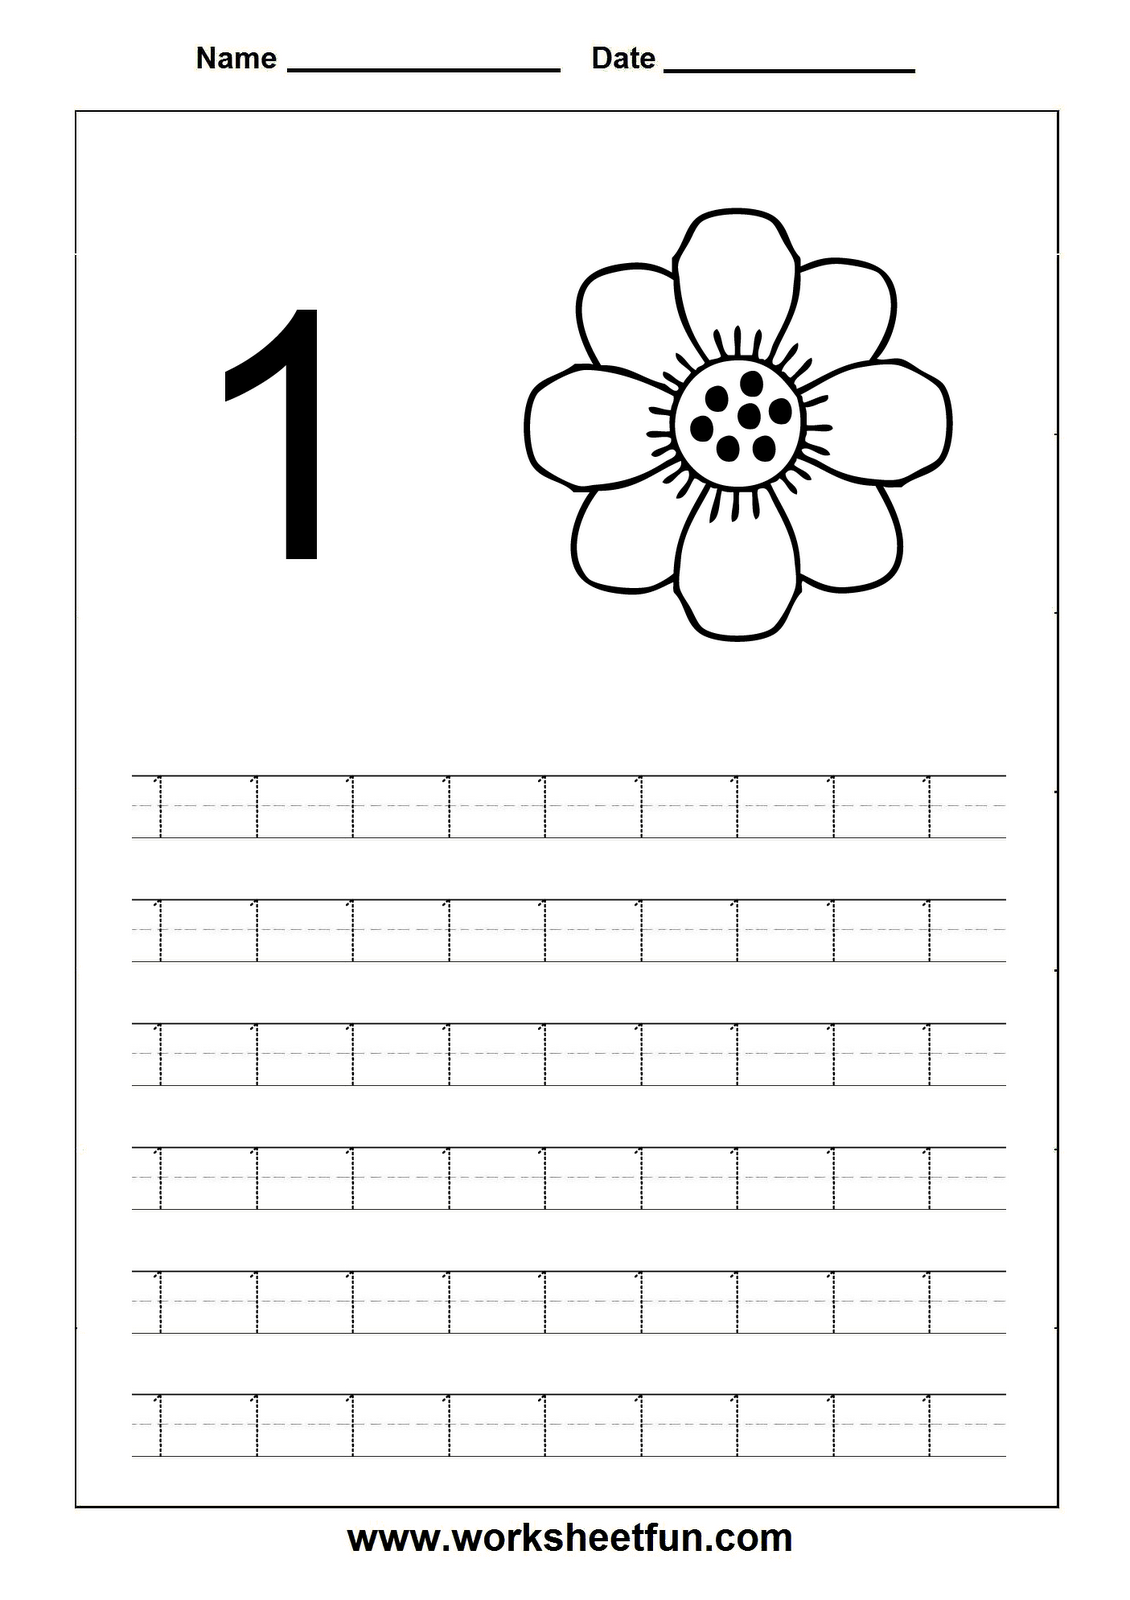 Printables Preschool Number Tracing Worksheets 1-20 1000 images about numbers on pinterest worksheets and kindergarten